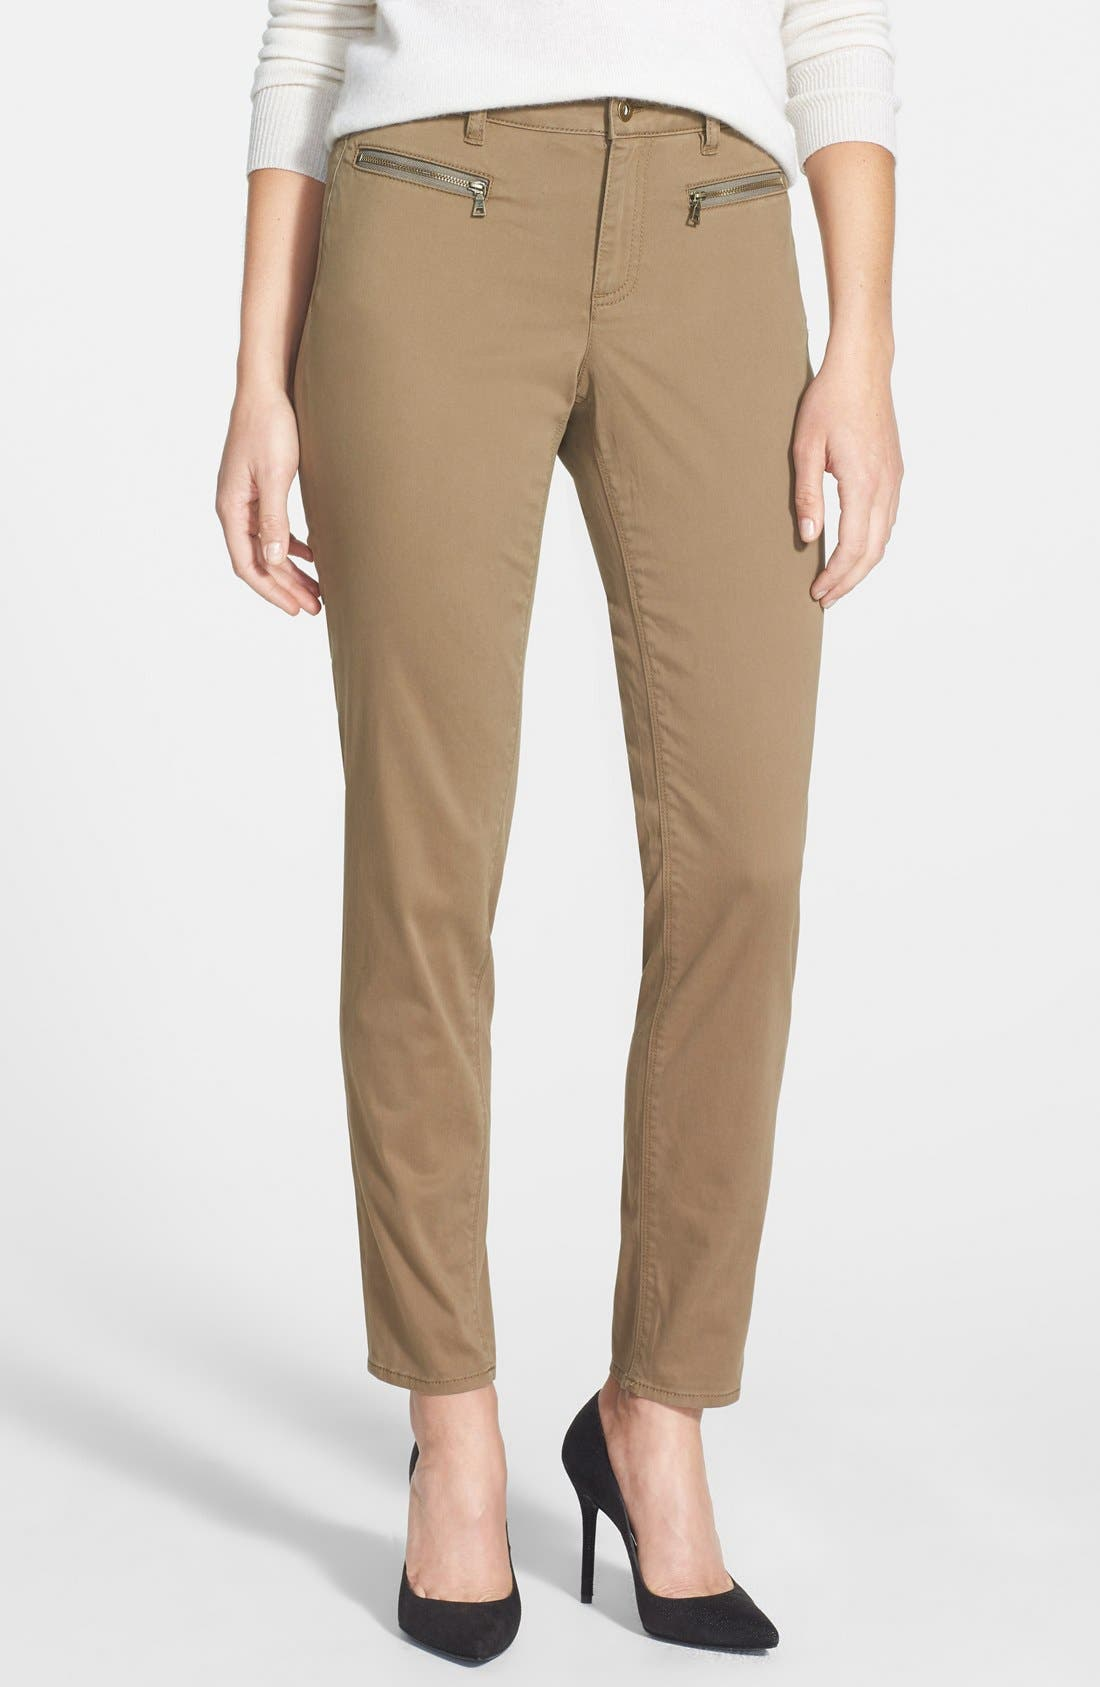 Alternate Image 1 Selected - Two by Vince Camuto Washed Sateen Slim Pants